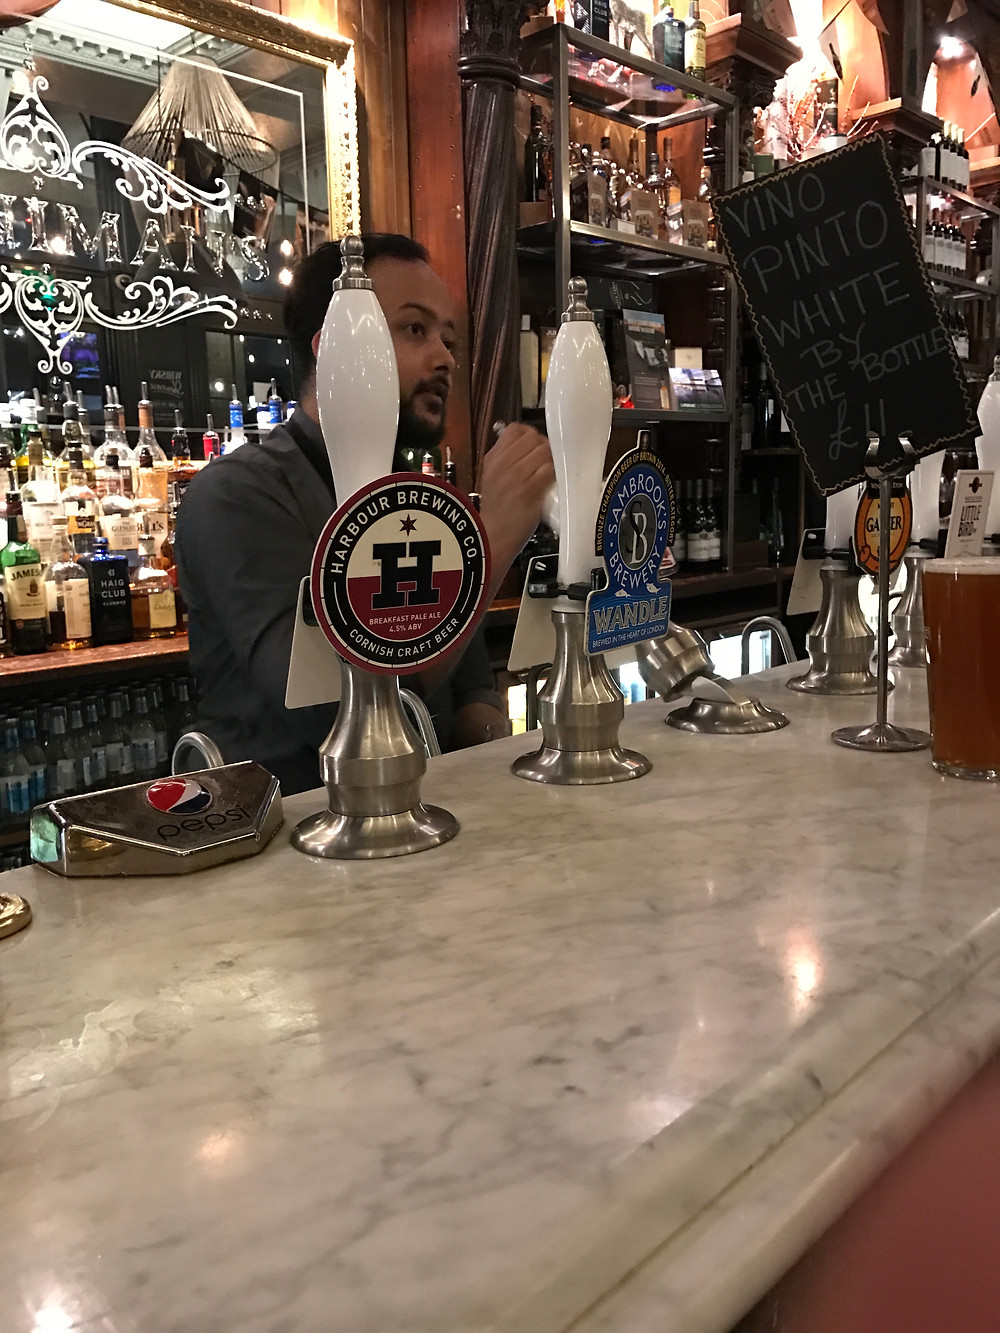 Bartender pumpking ale from a cask at a pub in the heart of London